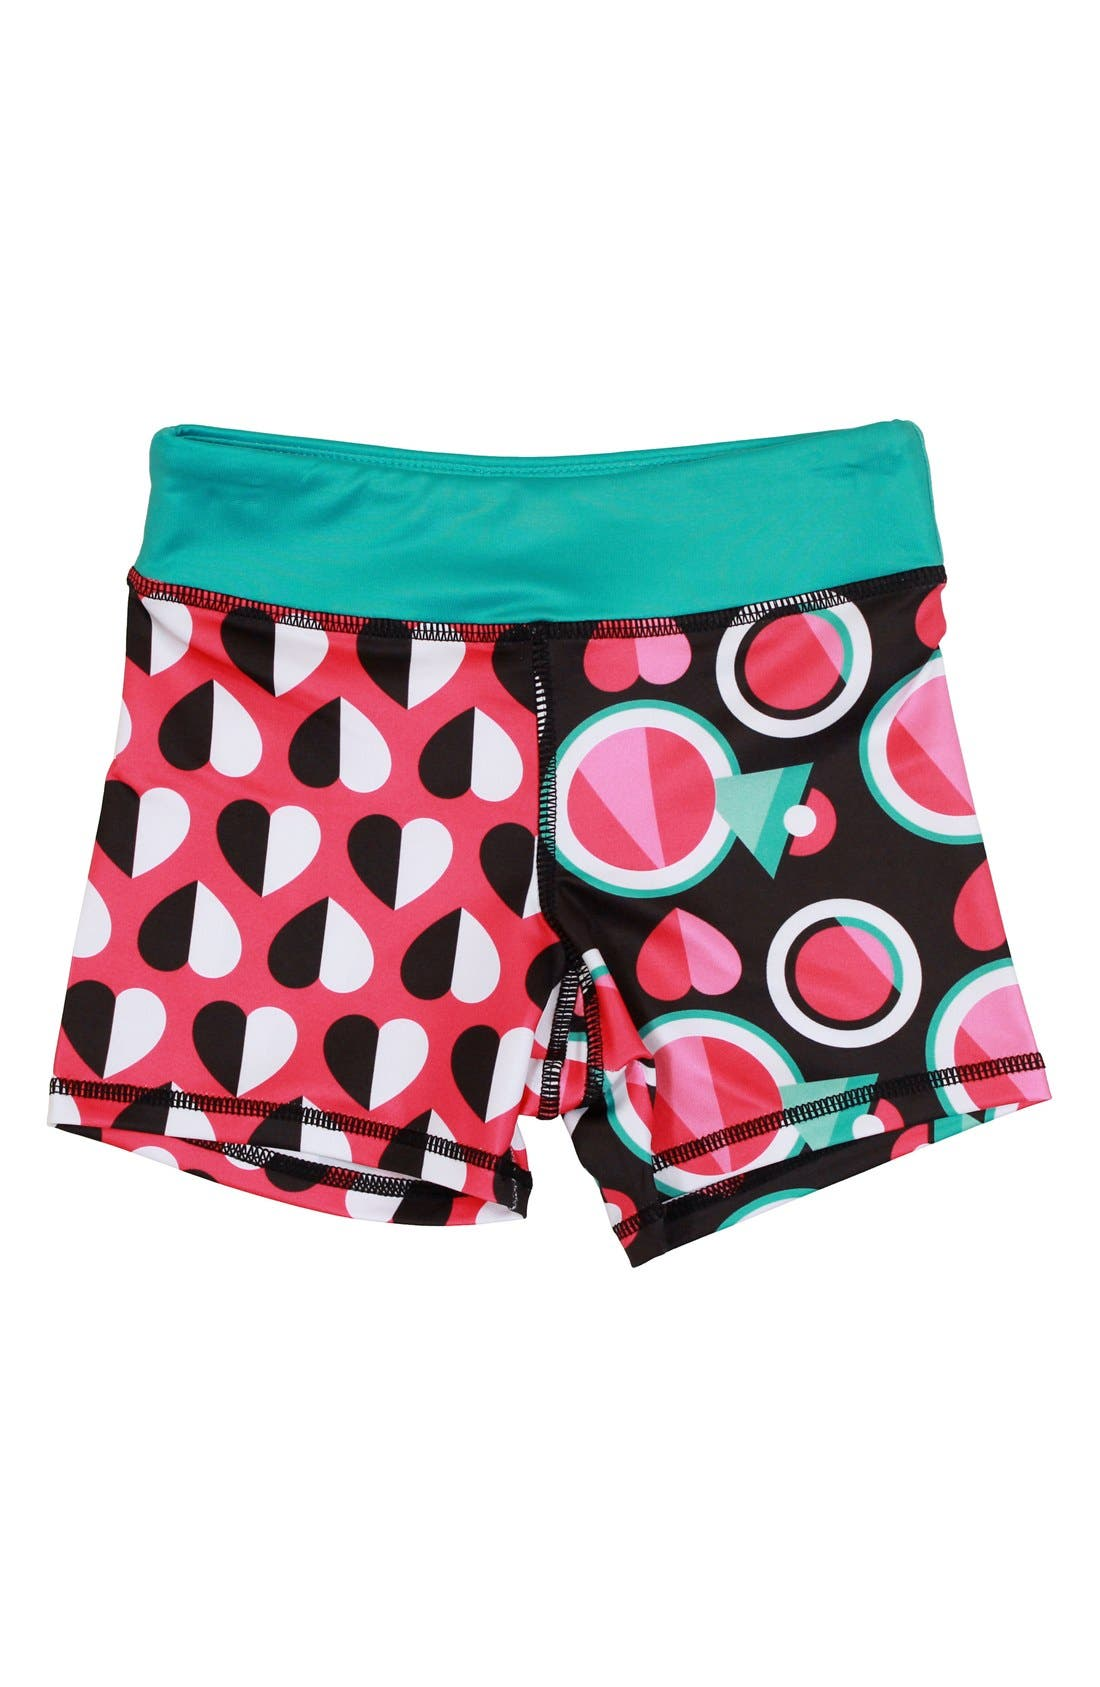 CHOOZE 'Splits' Mixed Print Shorts (Little Girls & Big Girls)